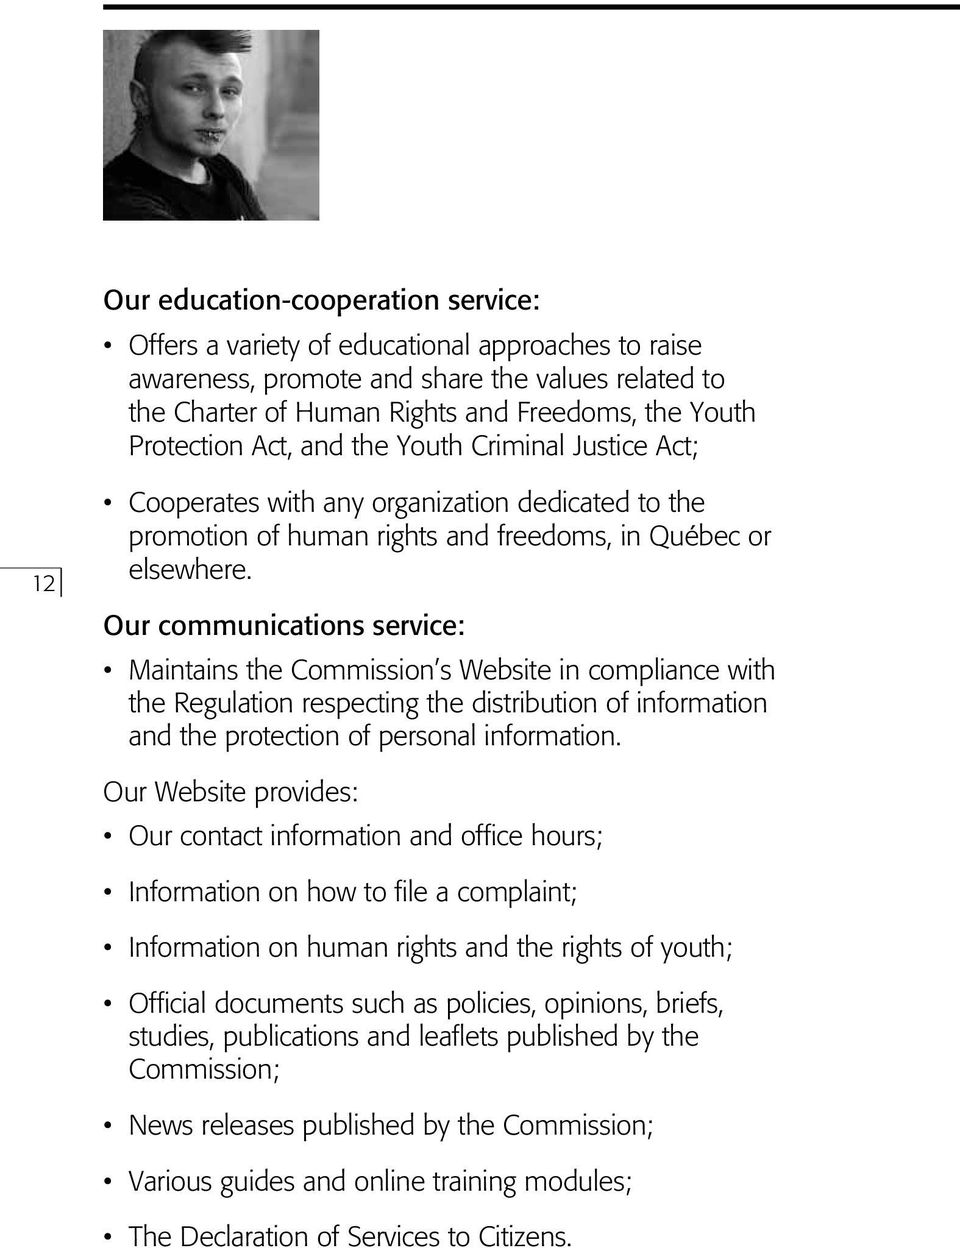 Our communications service: Maintains the Commission s Website in compliance with the Regulation respecting the distribution of information and the protection of personal information.